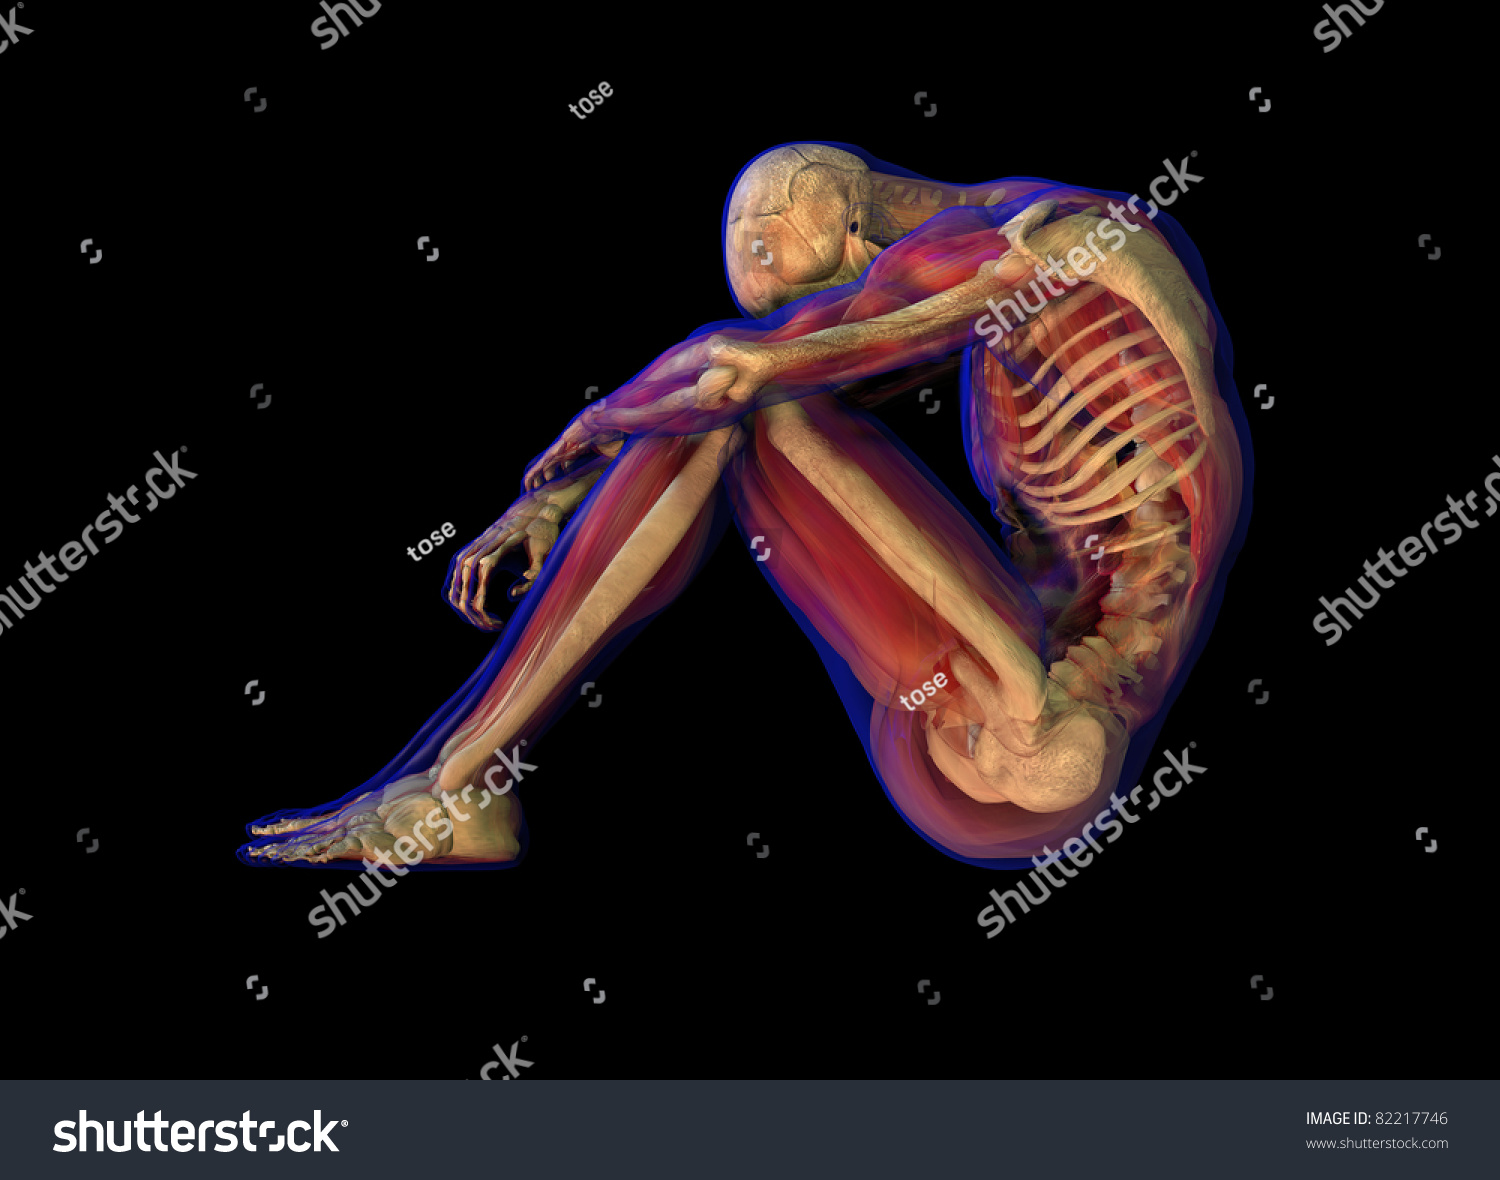 3d Illustration Of Human Male Anatomy And Skeleton ...